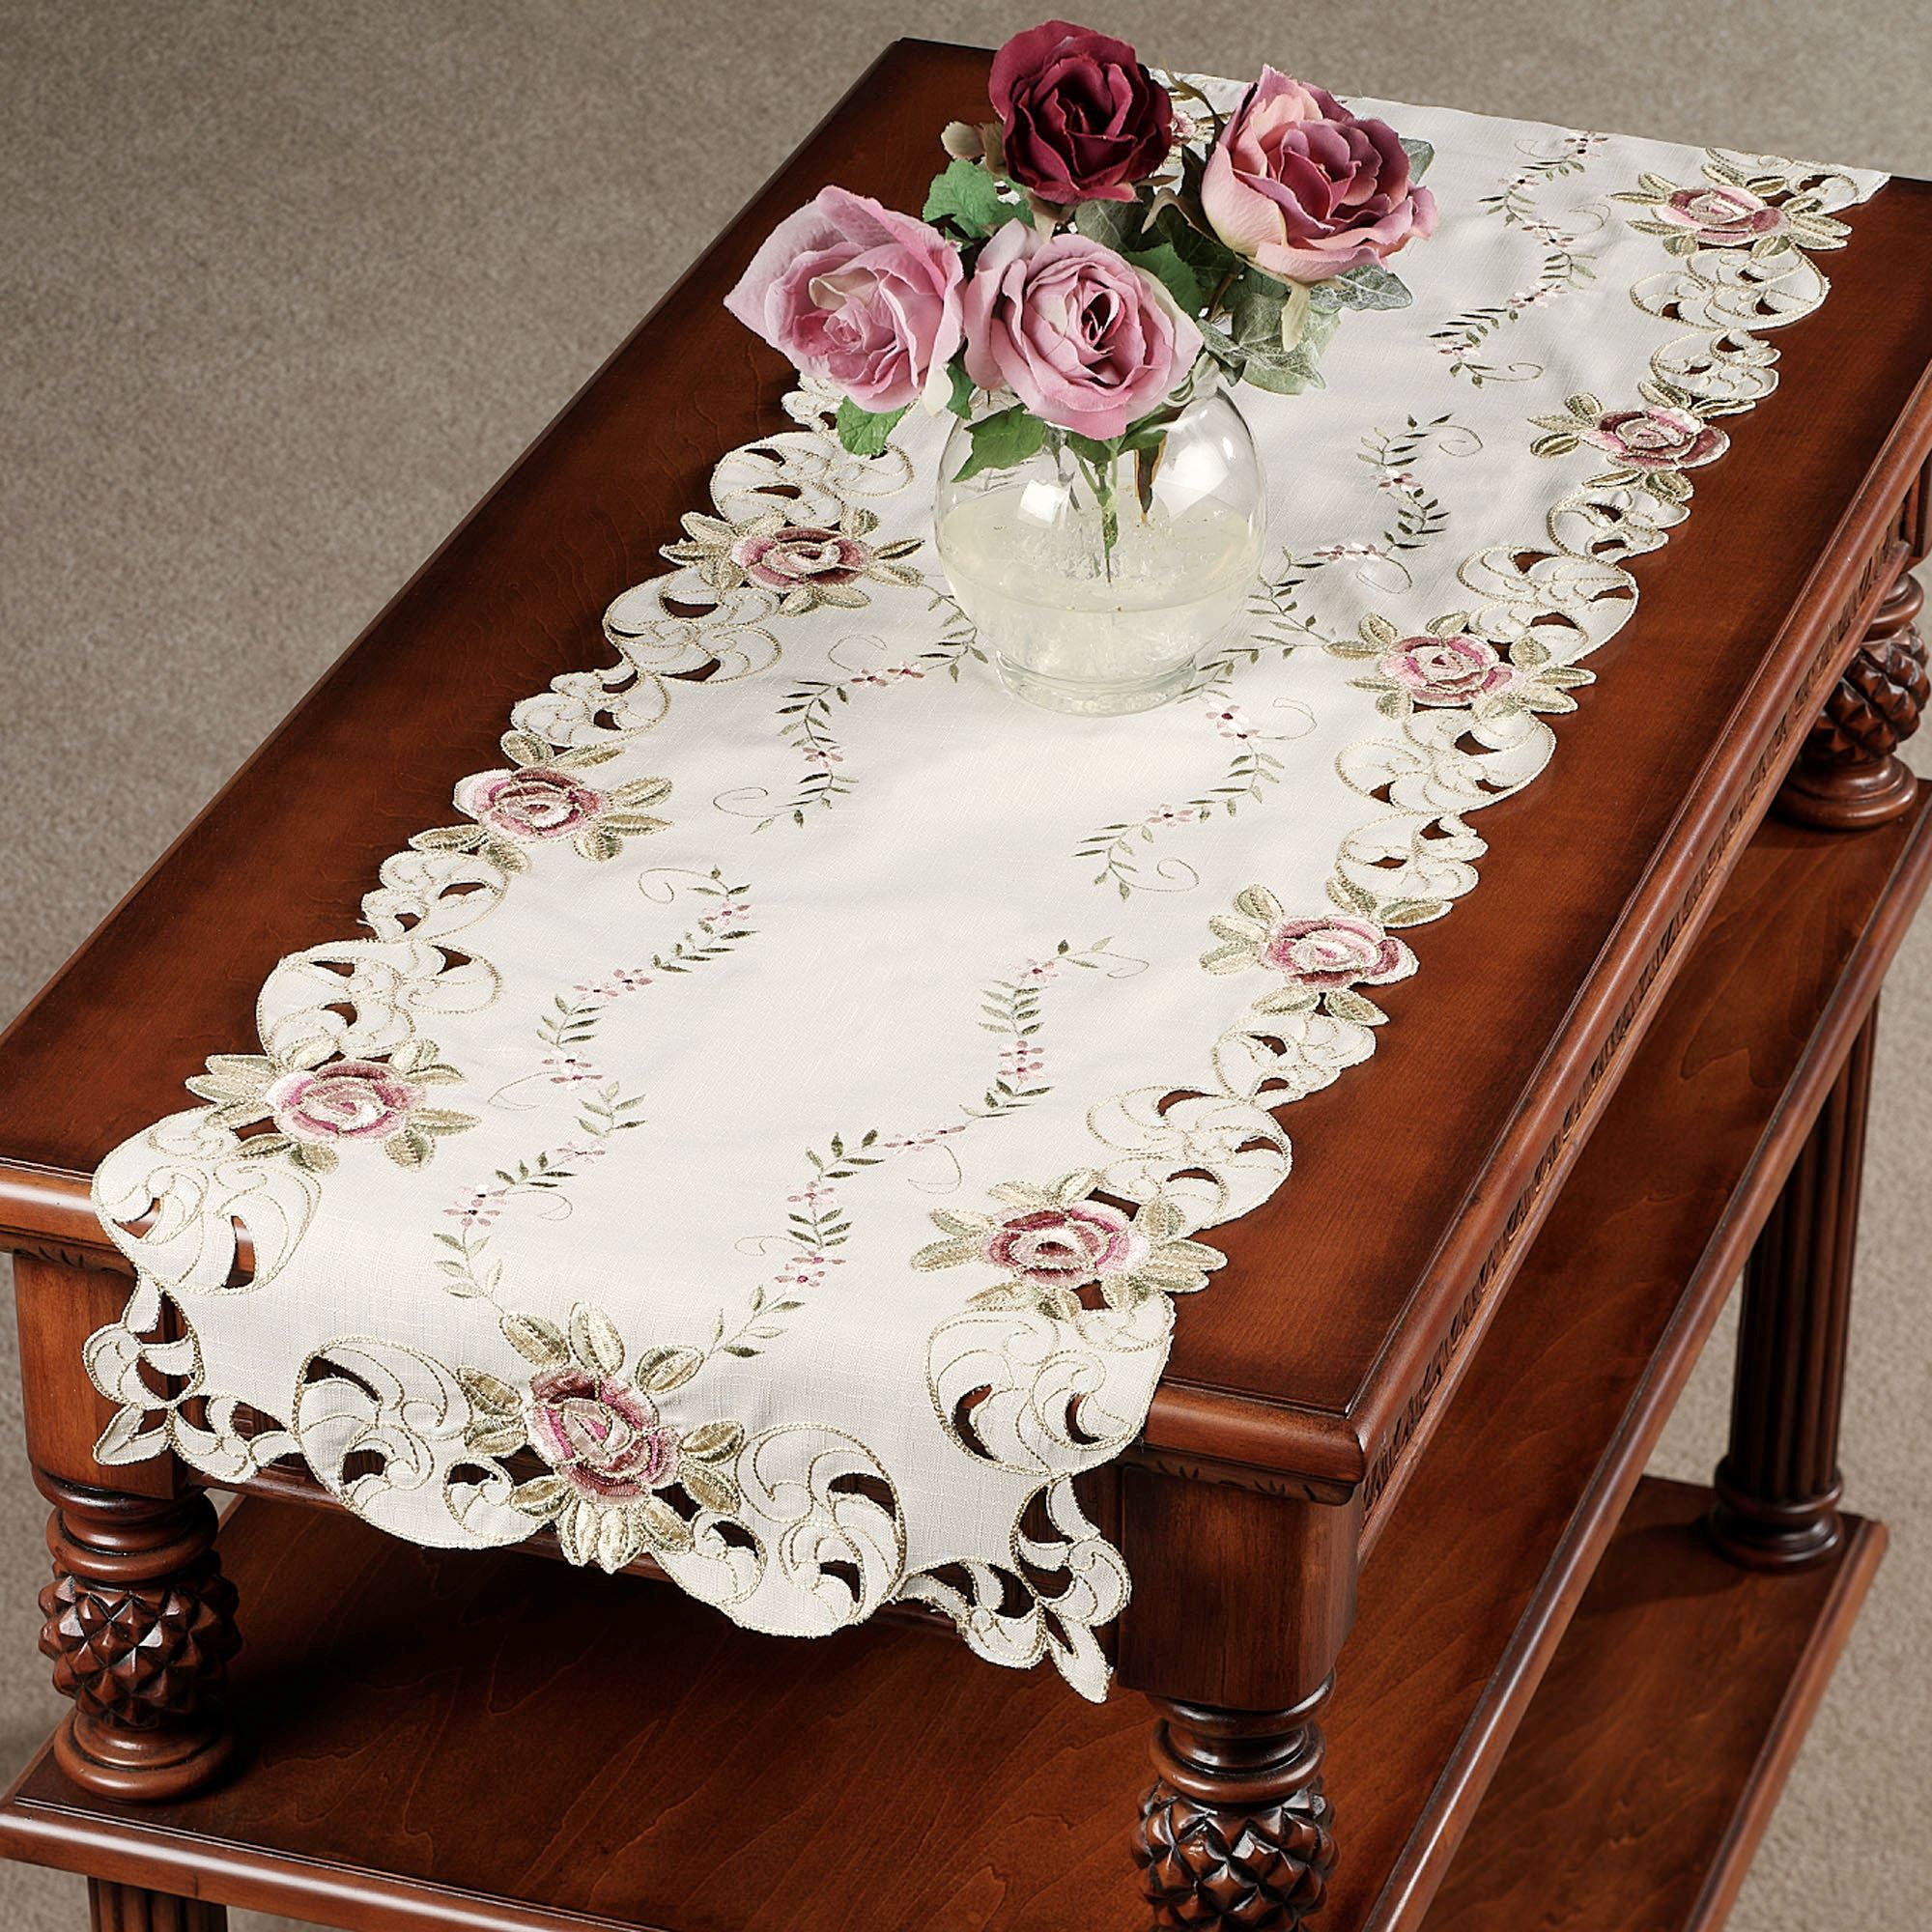 bella rose embroidered table runners accent runner touch zoom patterns green lamps contemporary cream coloured coffee tables weathered end white marble round outdoor bbq natural